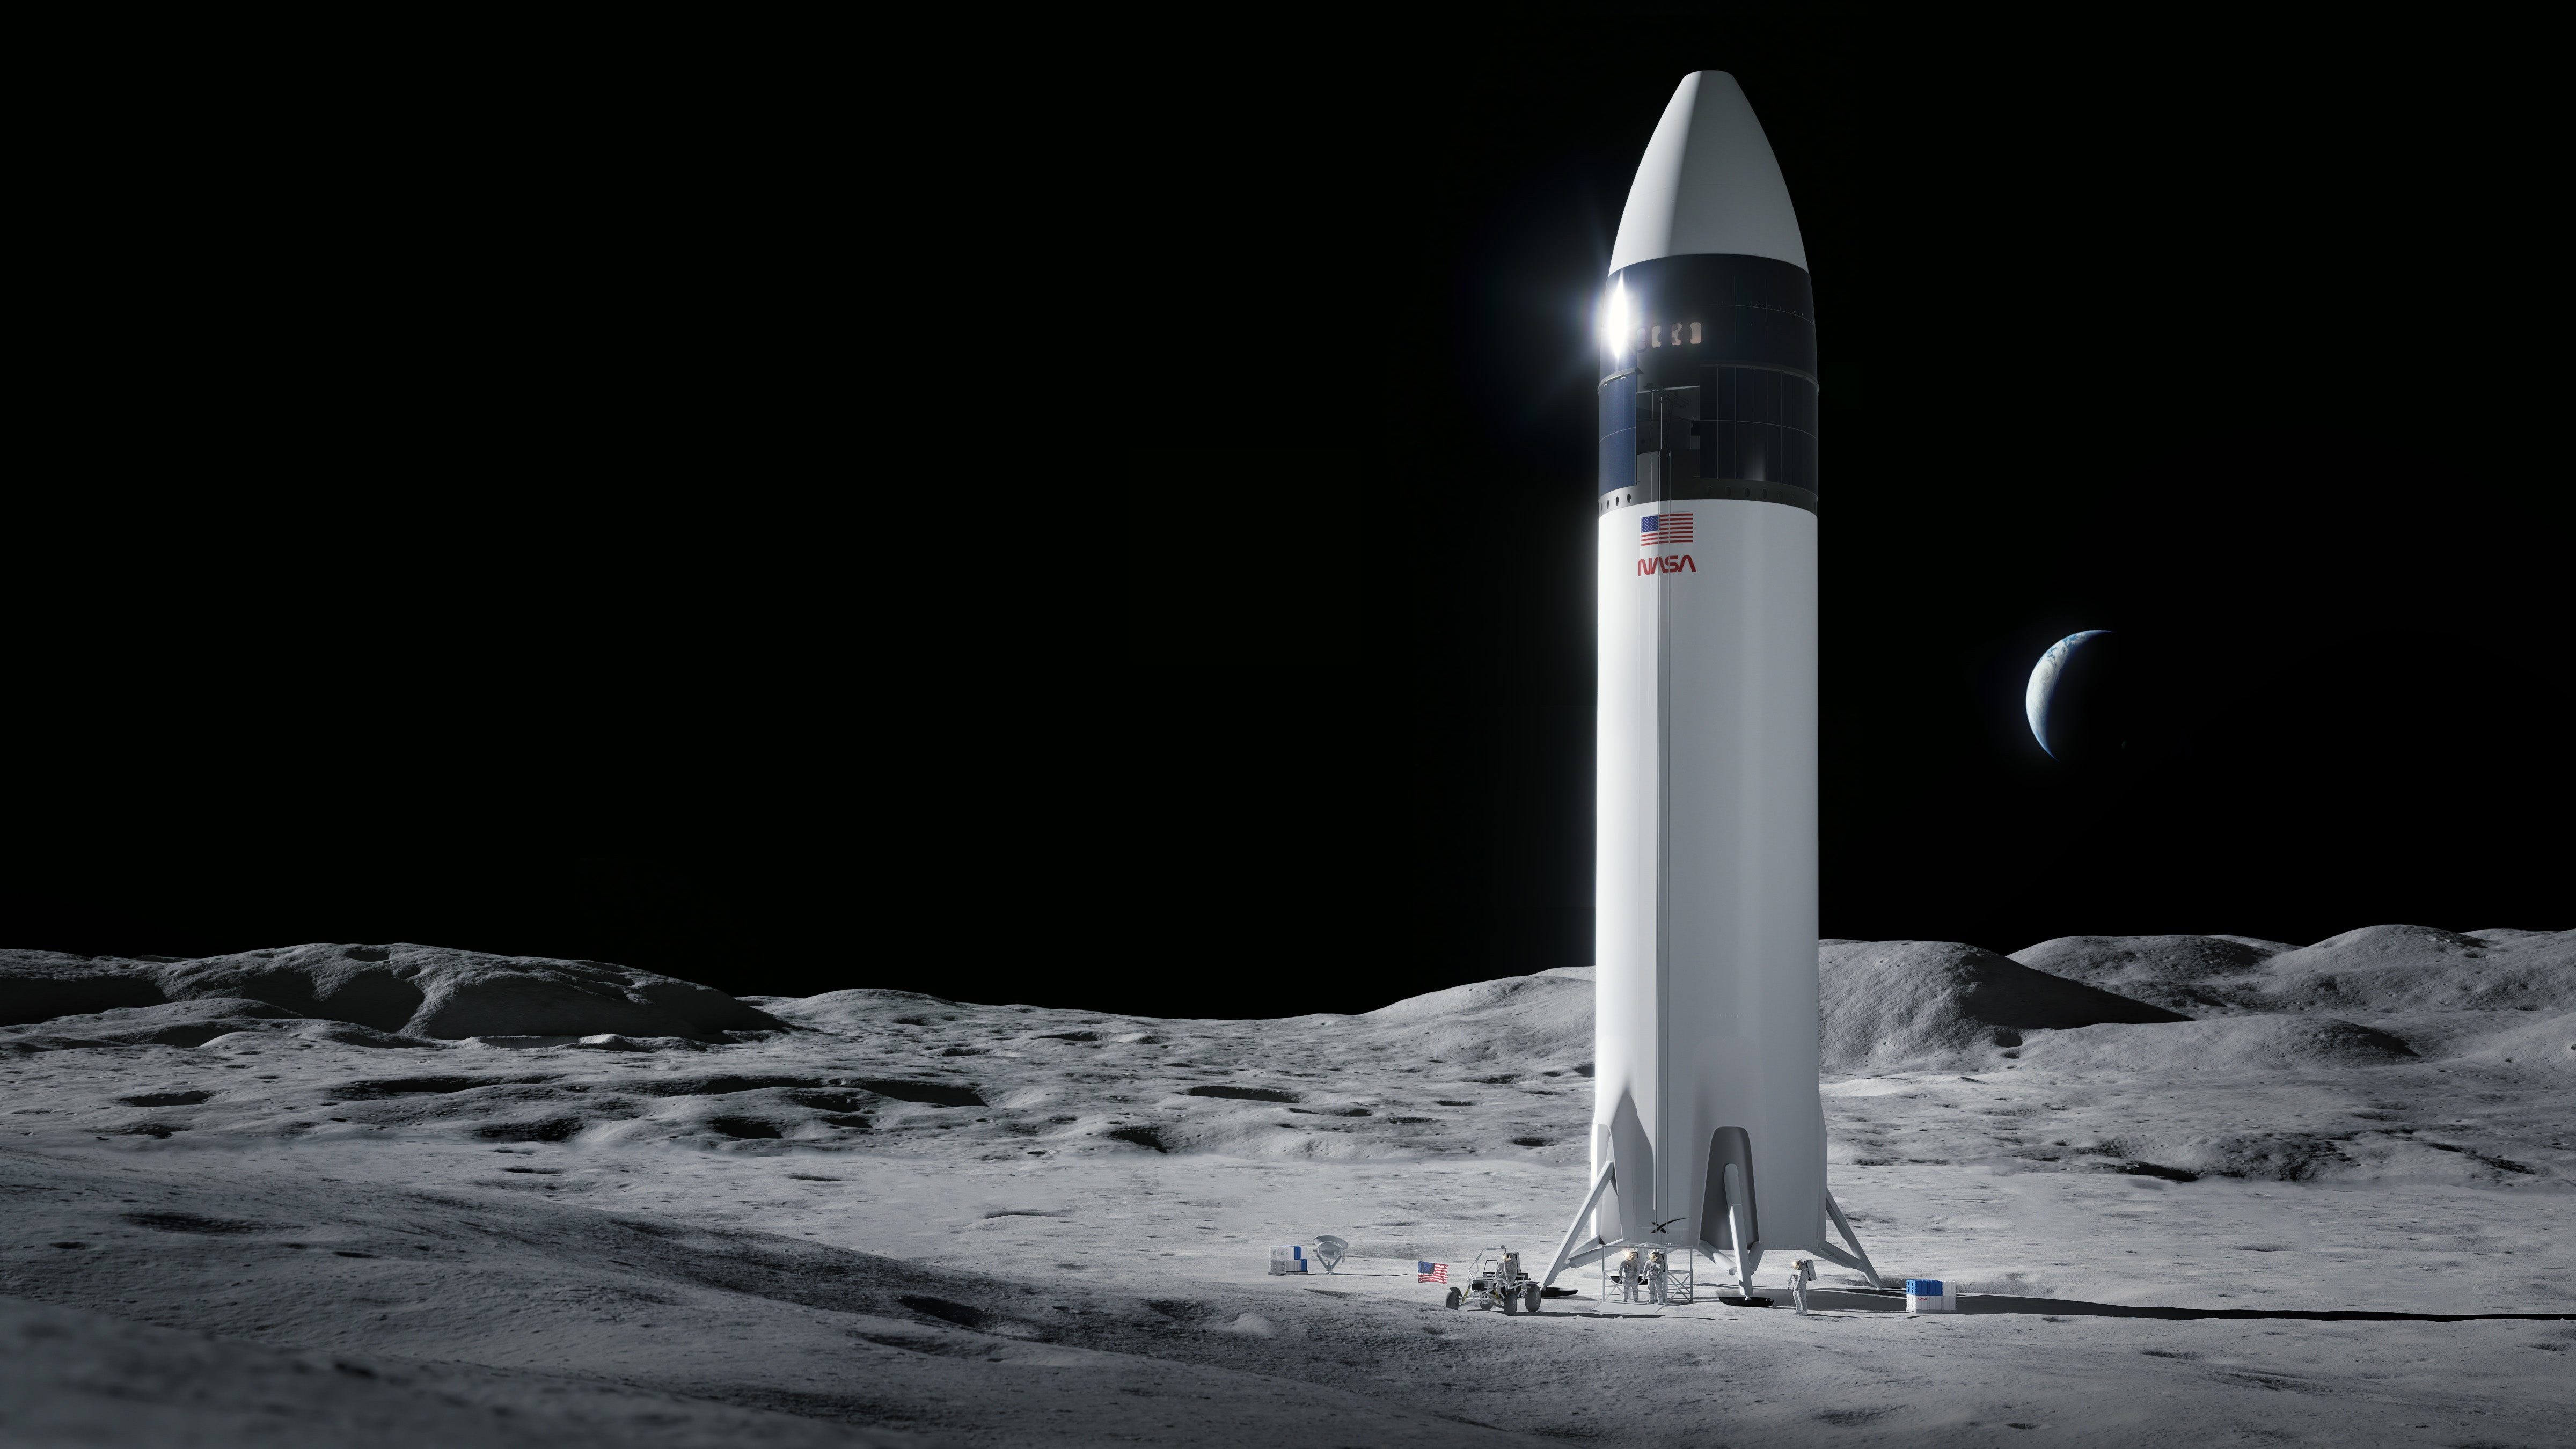 independent.co.uk - Andrew Griffin - Elon Musk's SpaceX has won a $3 billion contract to put humans on the Moon - but the full mission will take far more than that